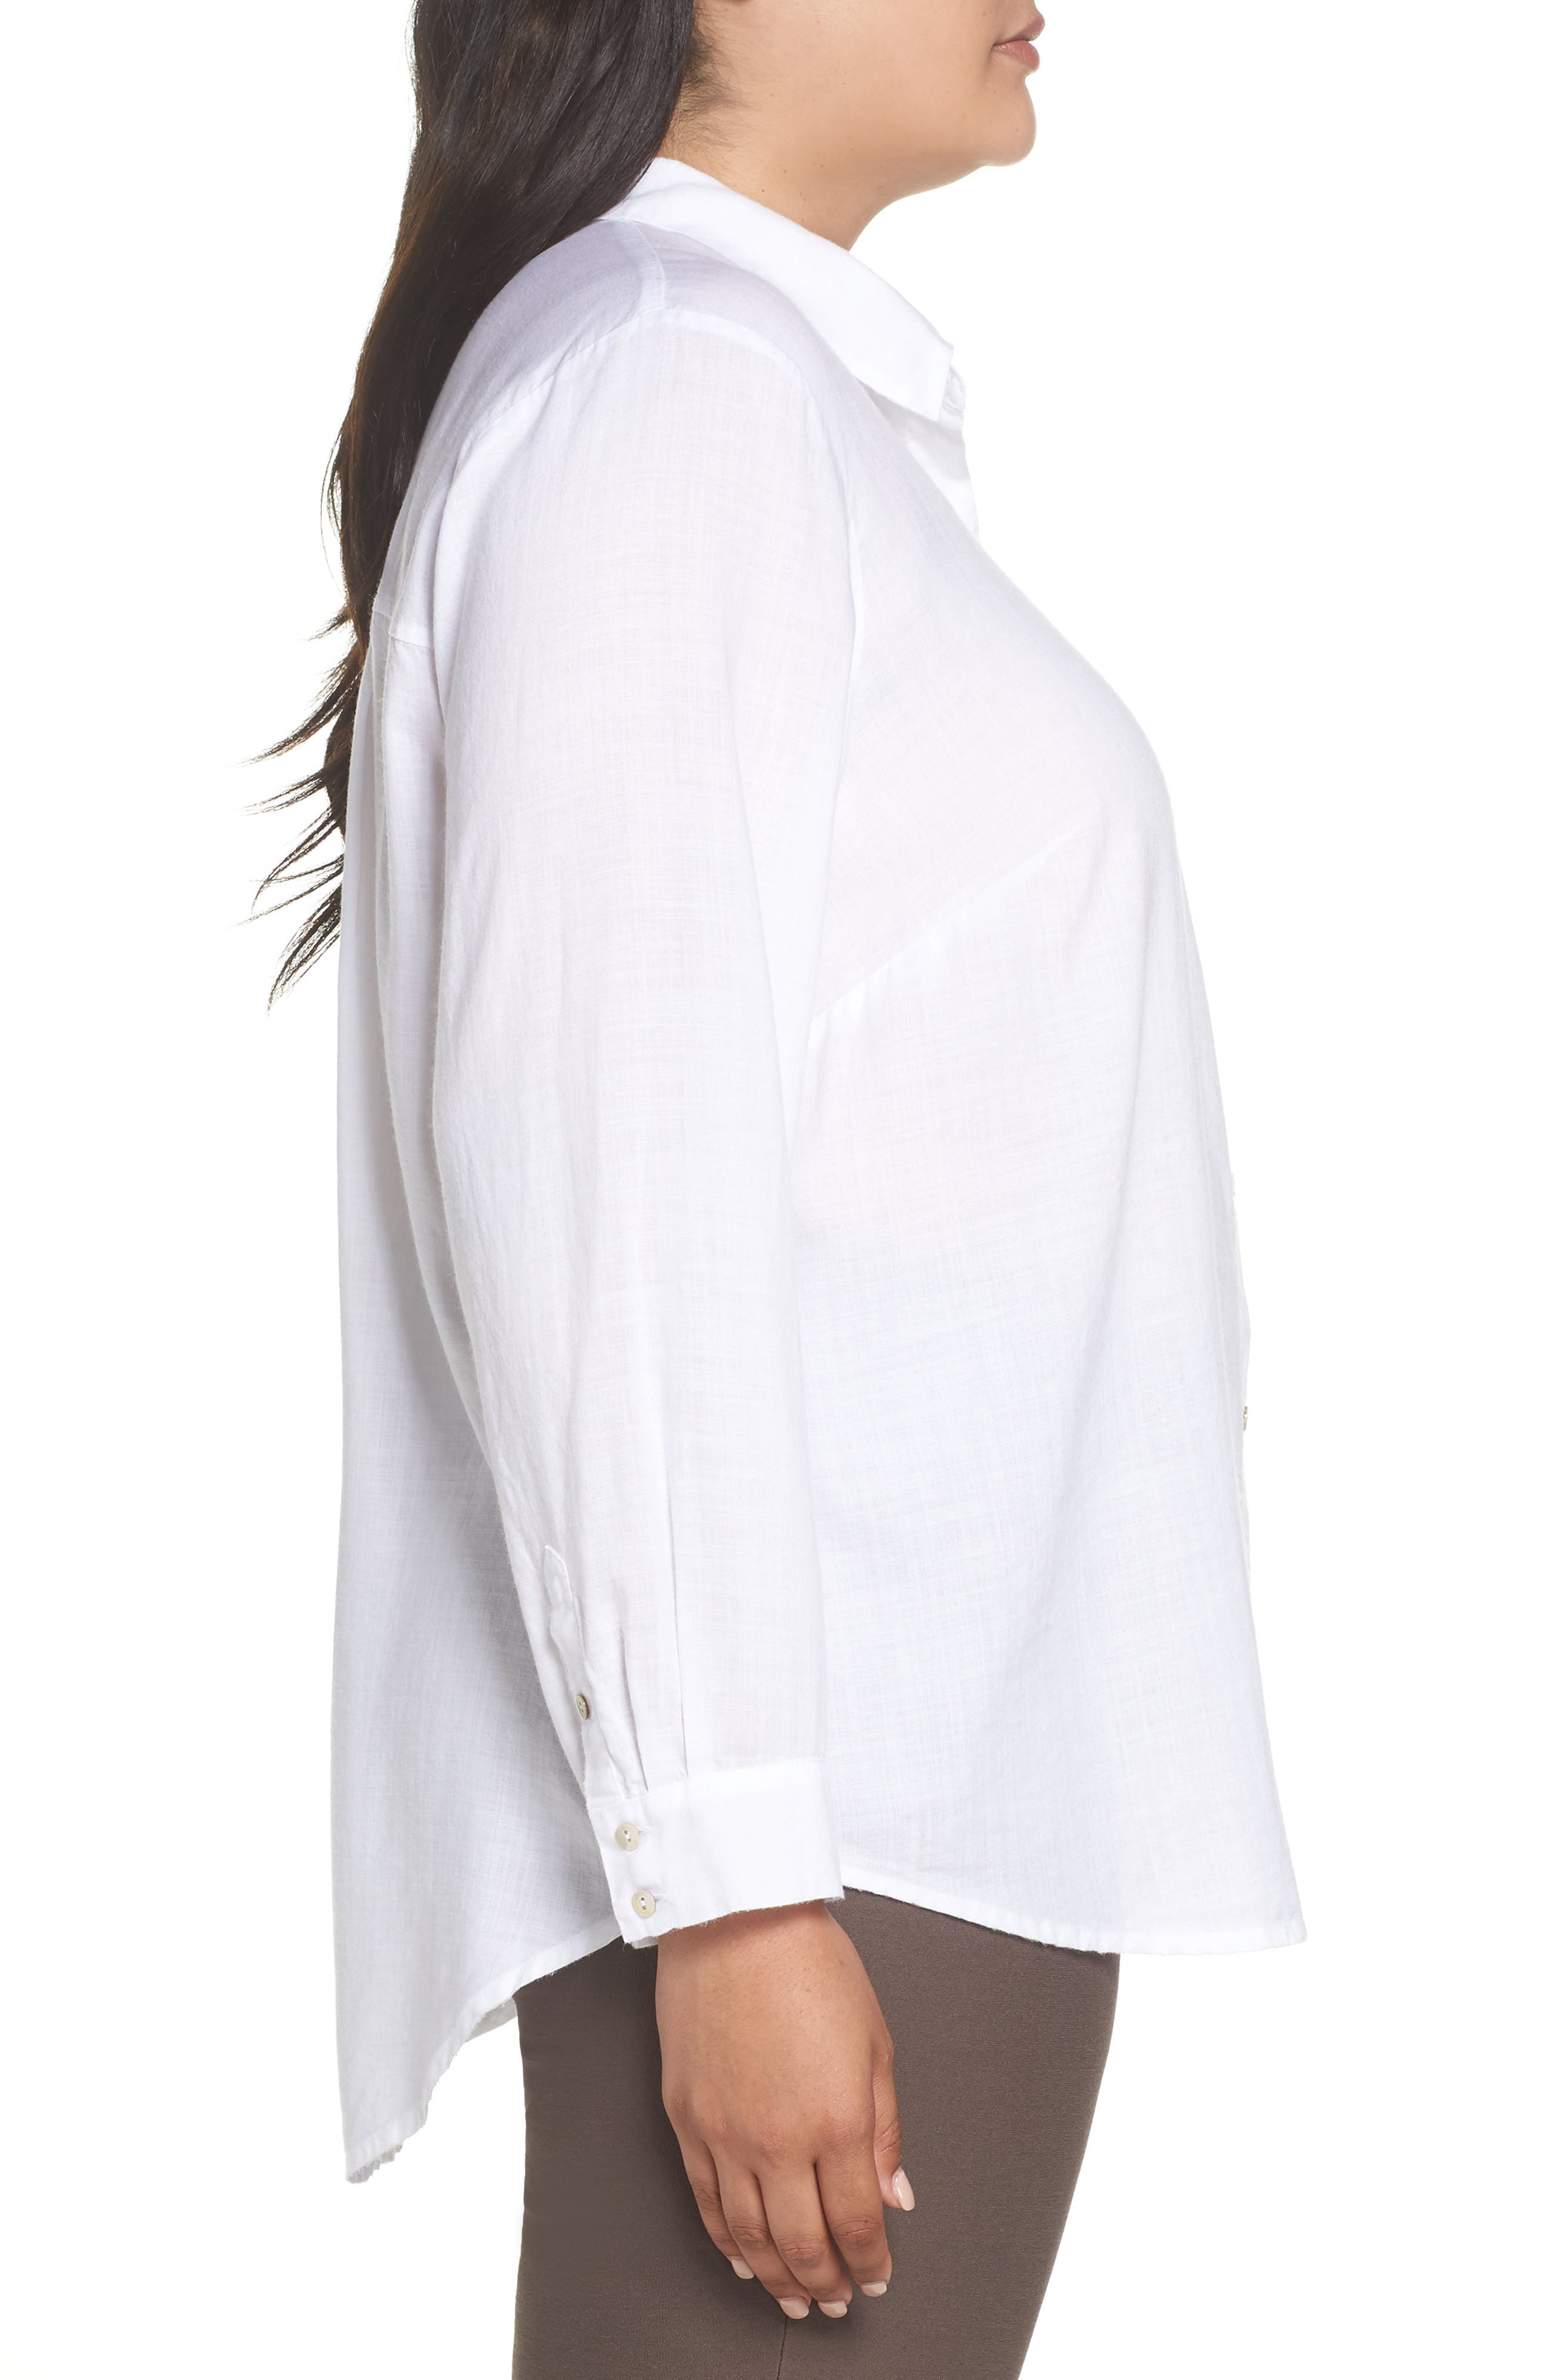 EILEEN FISHER, Tencel<sup>®</sup> Lyocell Shirt, Alternate thumbnail 3, color, WHITE